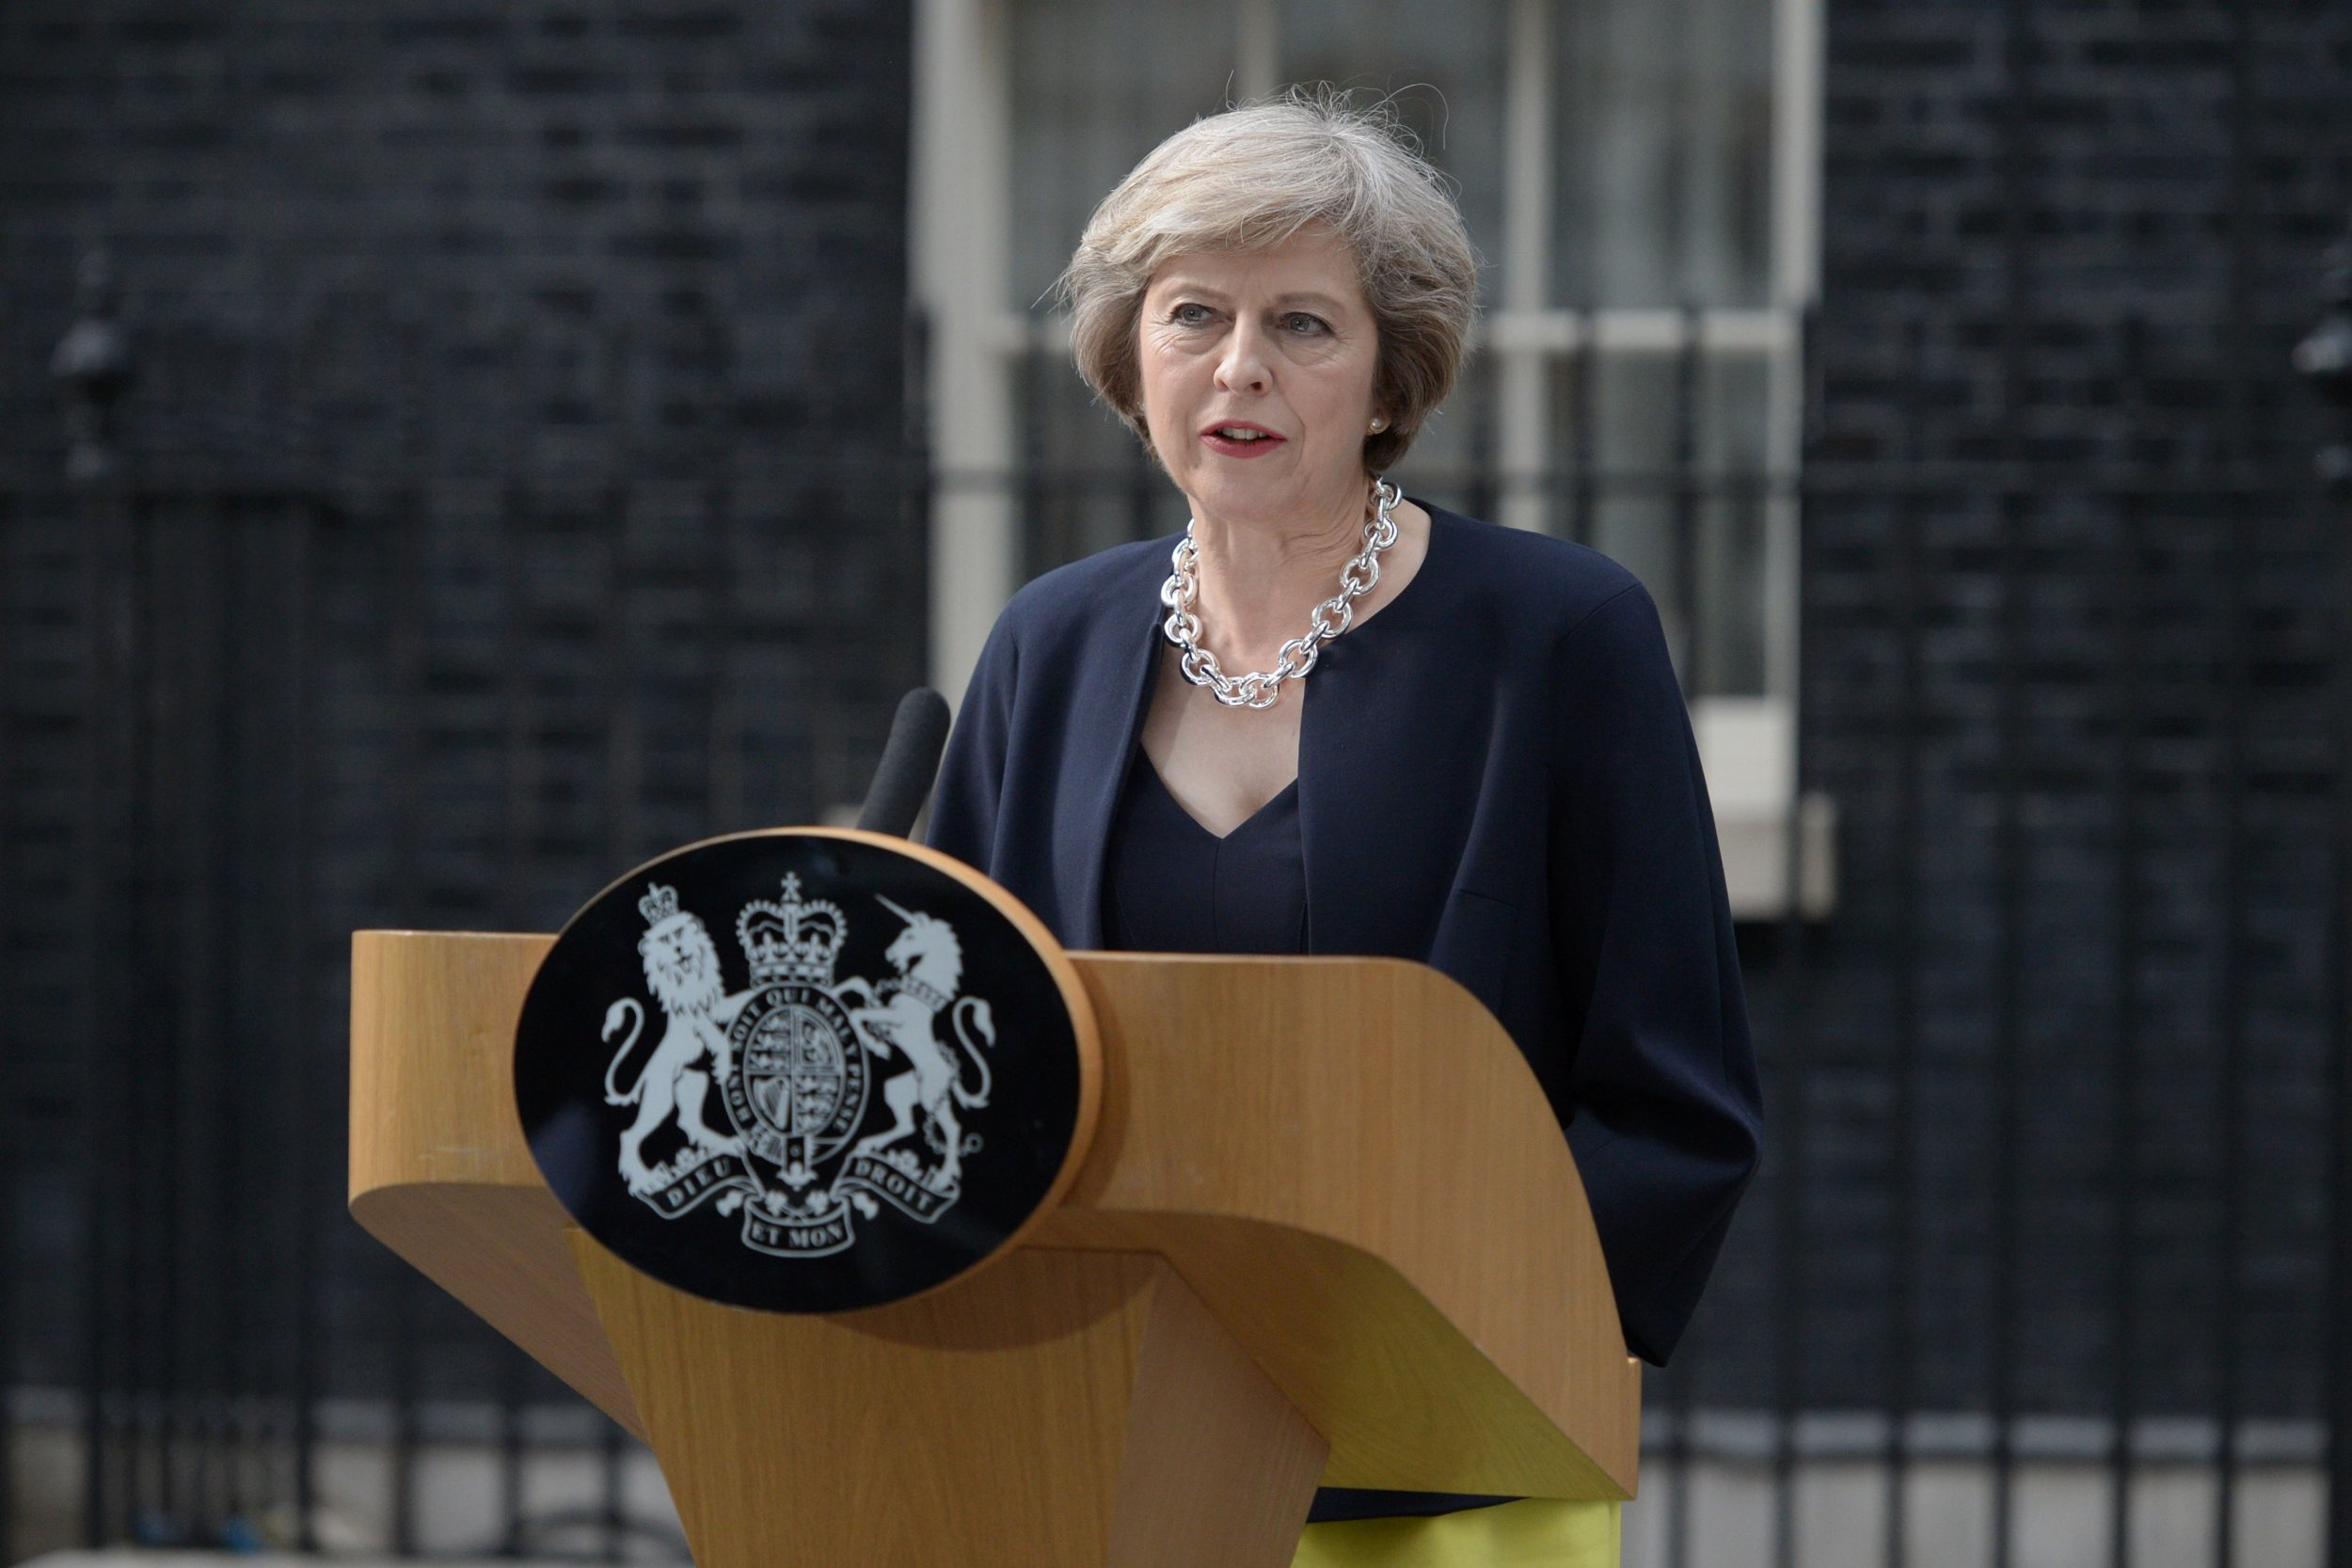 Britain's new Prime Minister Theresa May speaks outside 10 Downing Street in central London on July 13, 2016 on the day she takes office following the formal resignation of David Cameron. Theresa May took office as Britain's second female prime minister on July 13 charged with guiding the UK out of the European Union after a deeply devisive referendum campaign ended with Britain voting to leave and David Cameron resigning. / AFP PHOTO / OLI SCARFFOLI SCARFF/AFP/Getty Images